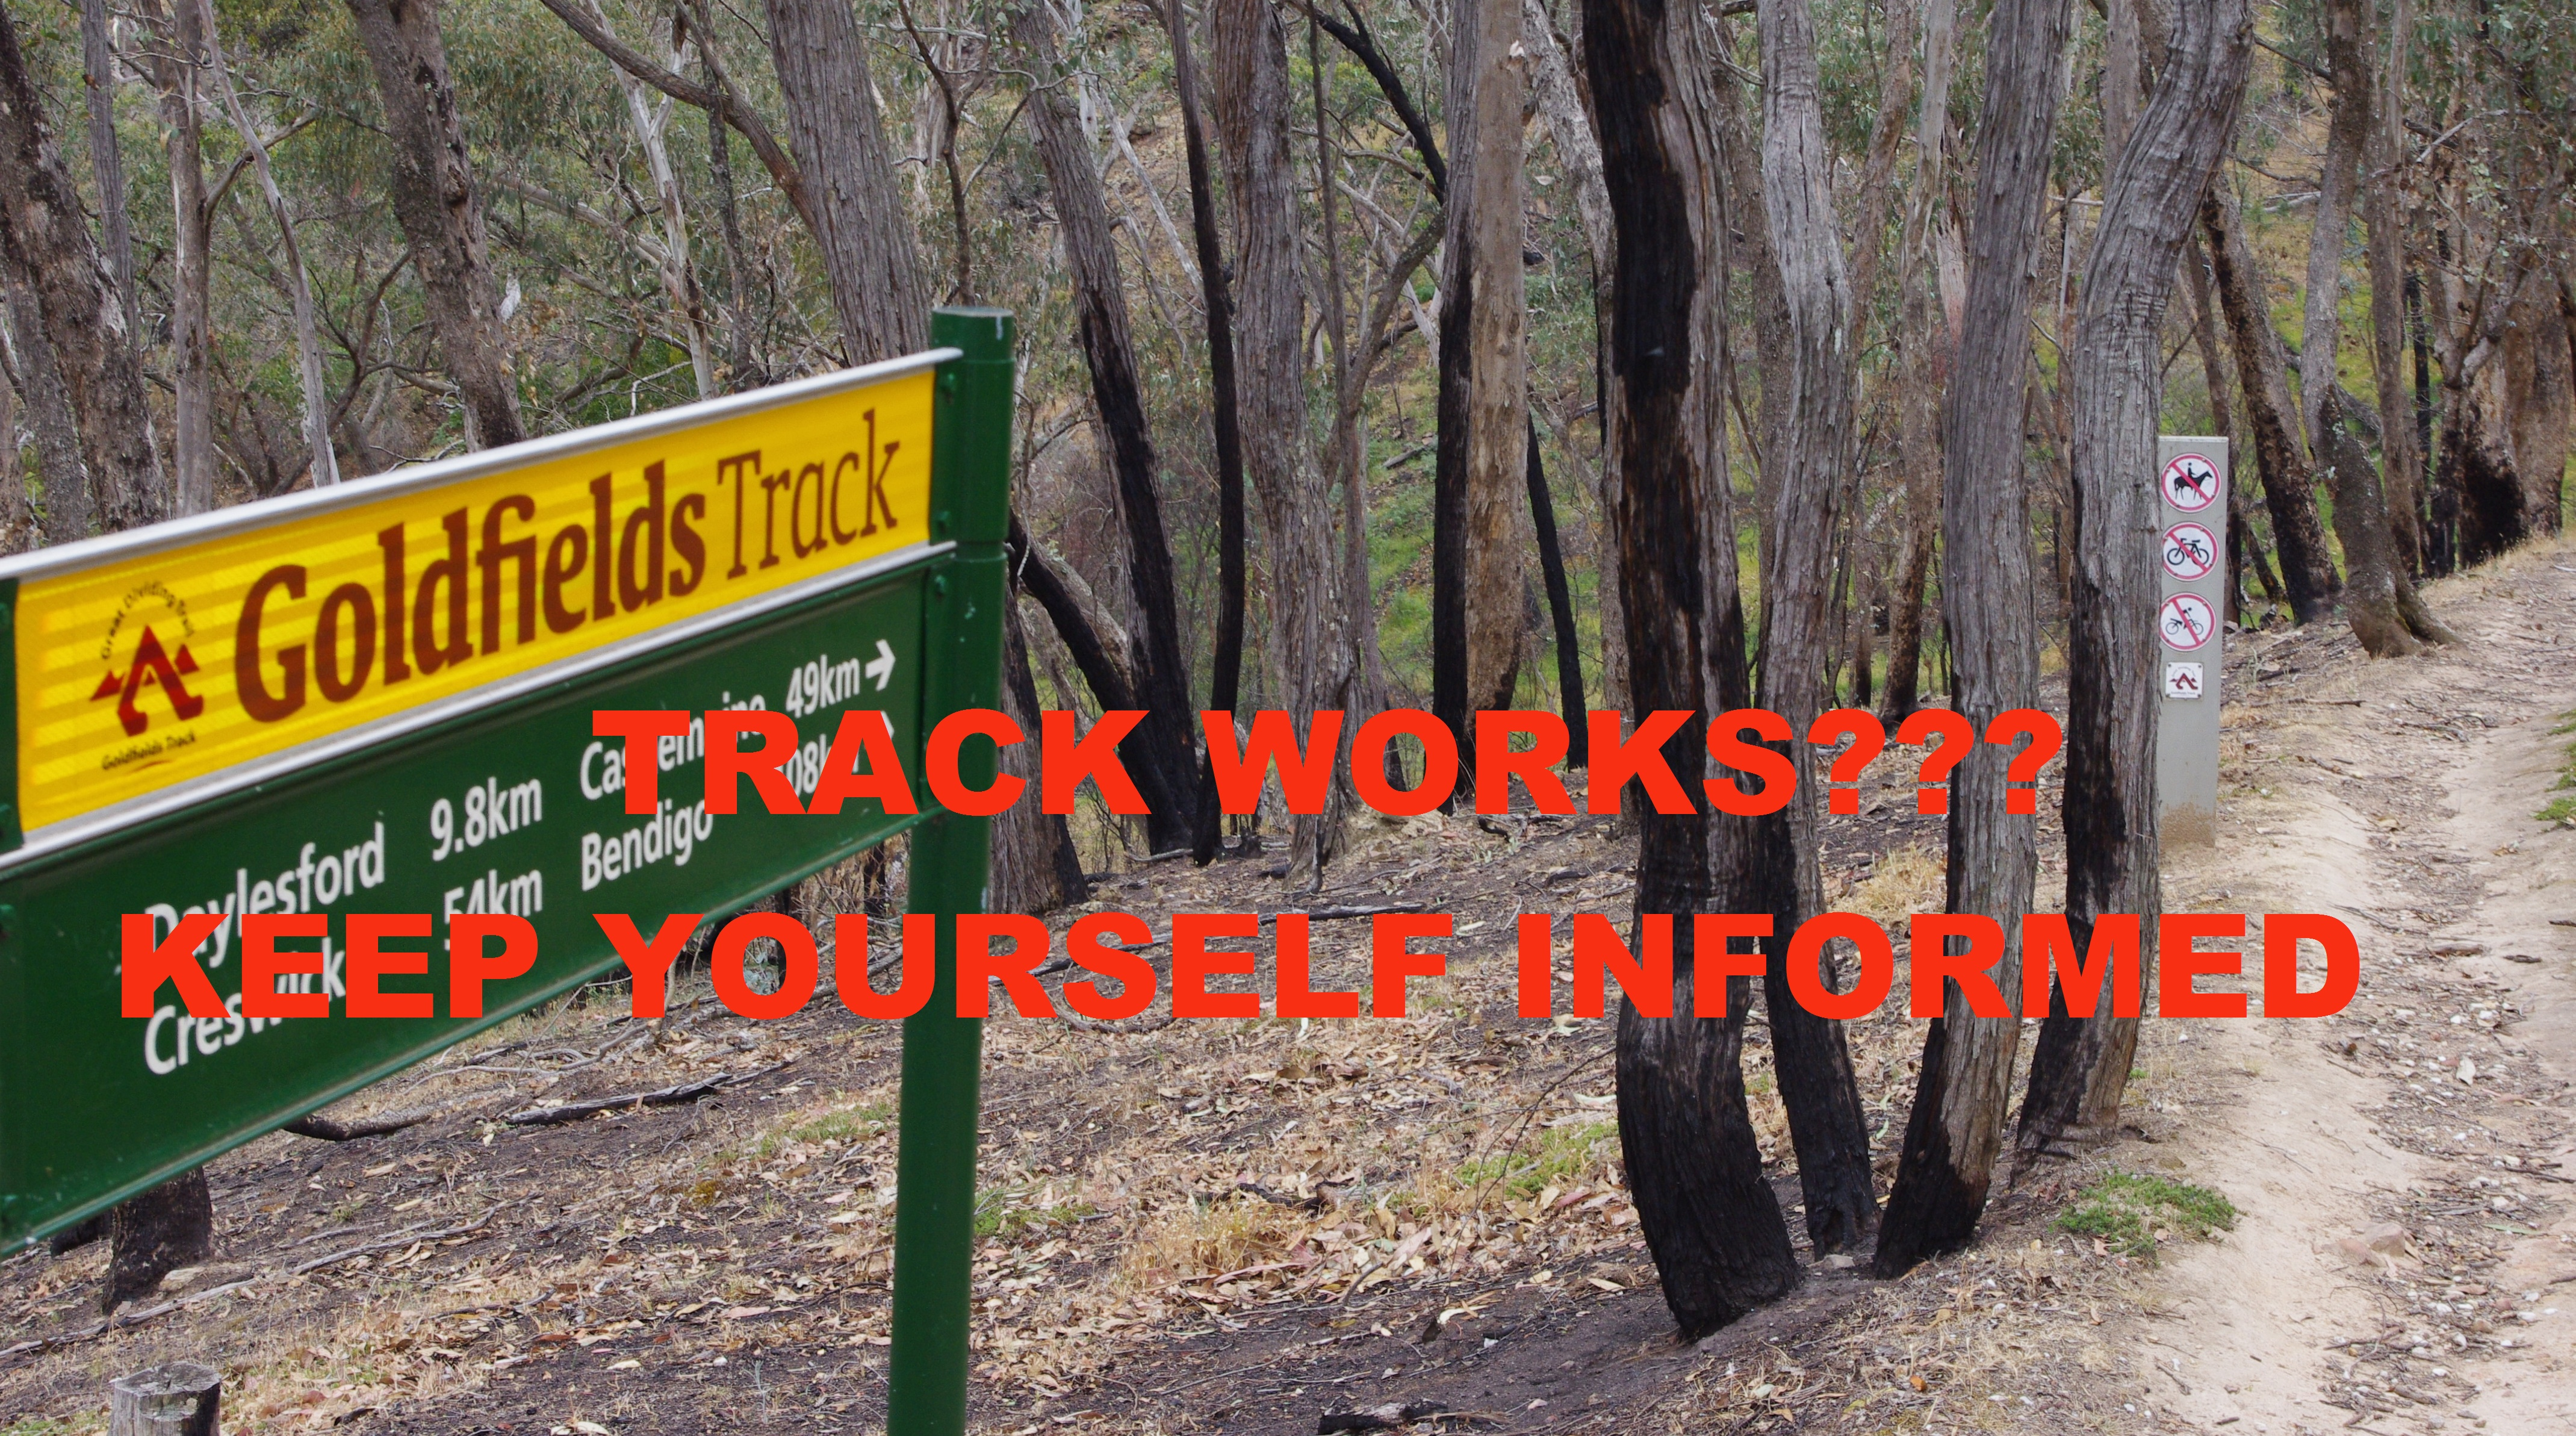 Keep informed on track closures, click for more info